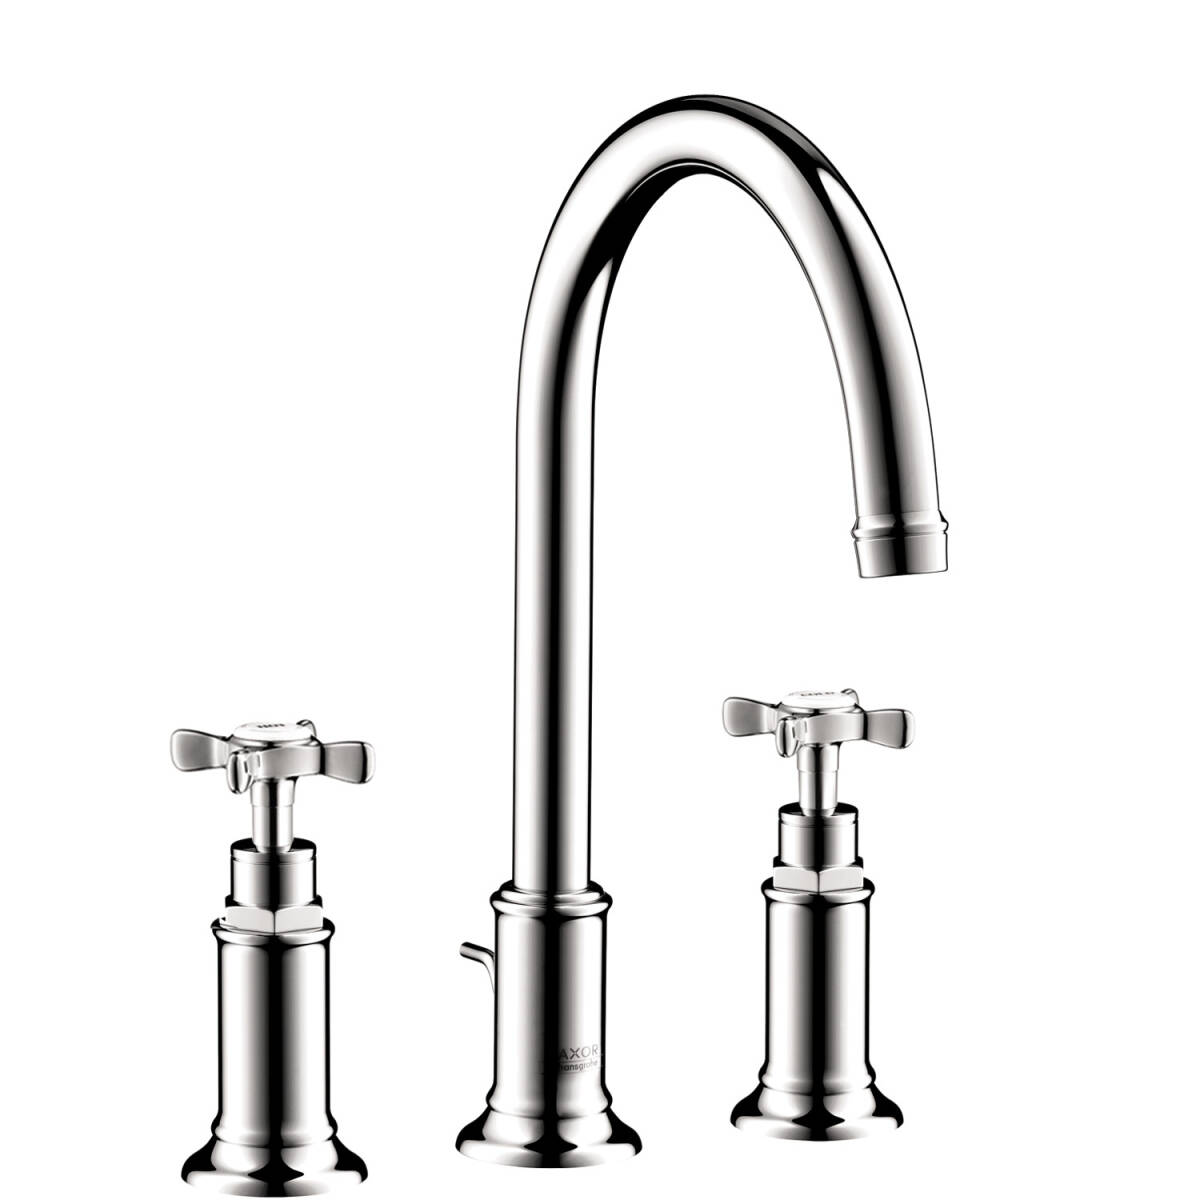 3-hole basin mixer 180 with cross handles and pop-up waste set, Chrome, 16513001